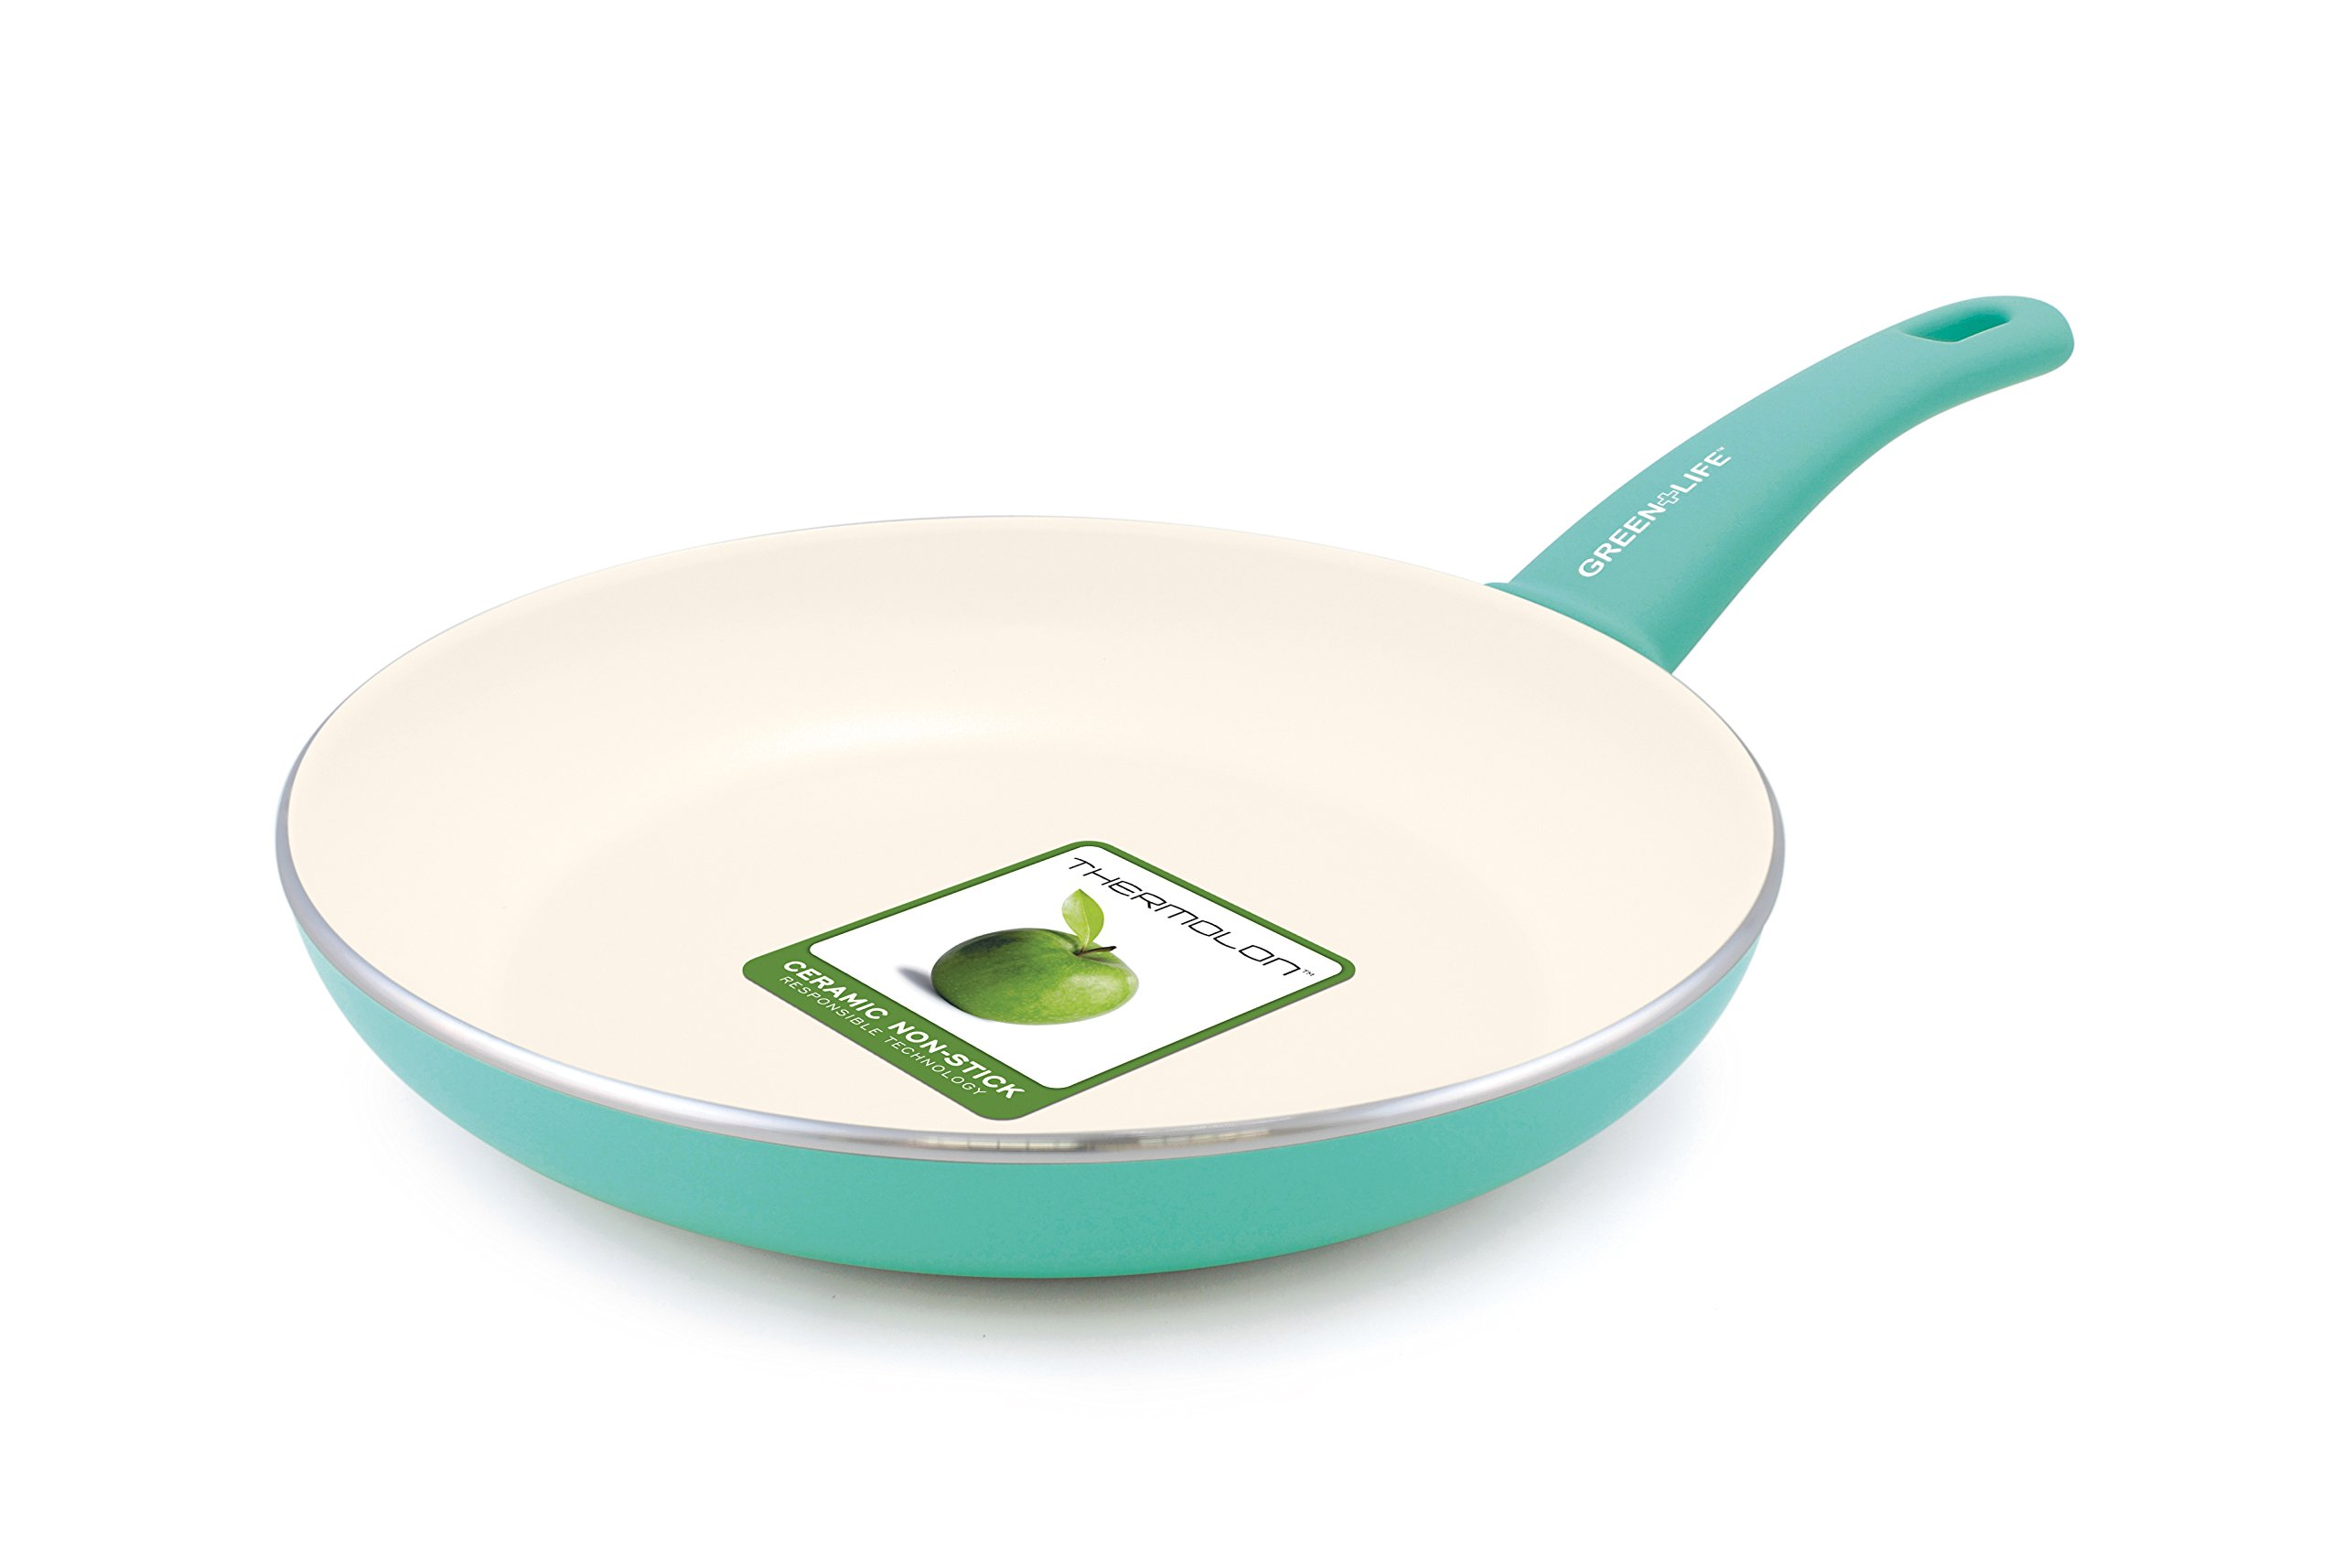 GreenLife Soft Grip 12'' Ceramic Non-Stick Open Frypan, Turquoise - CW000524-002